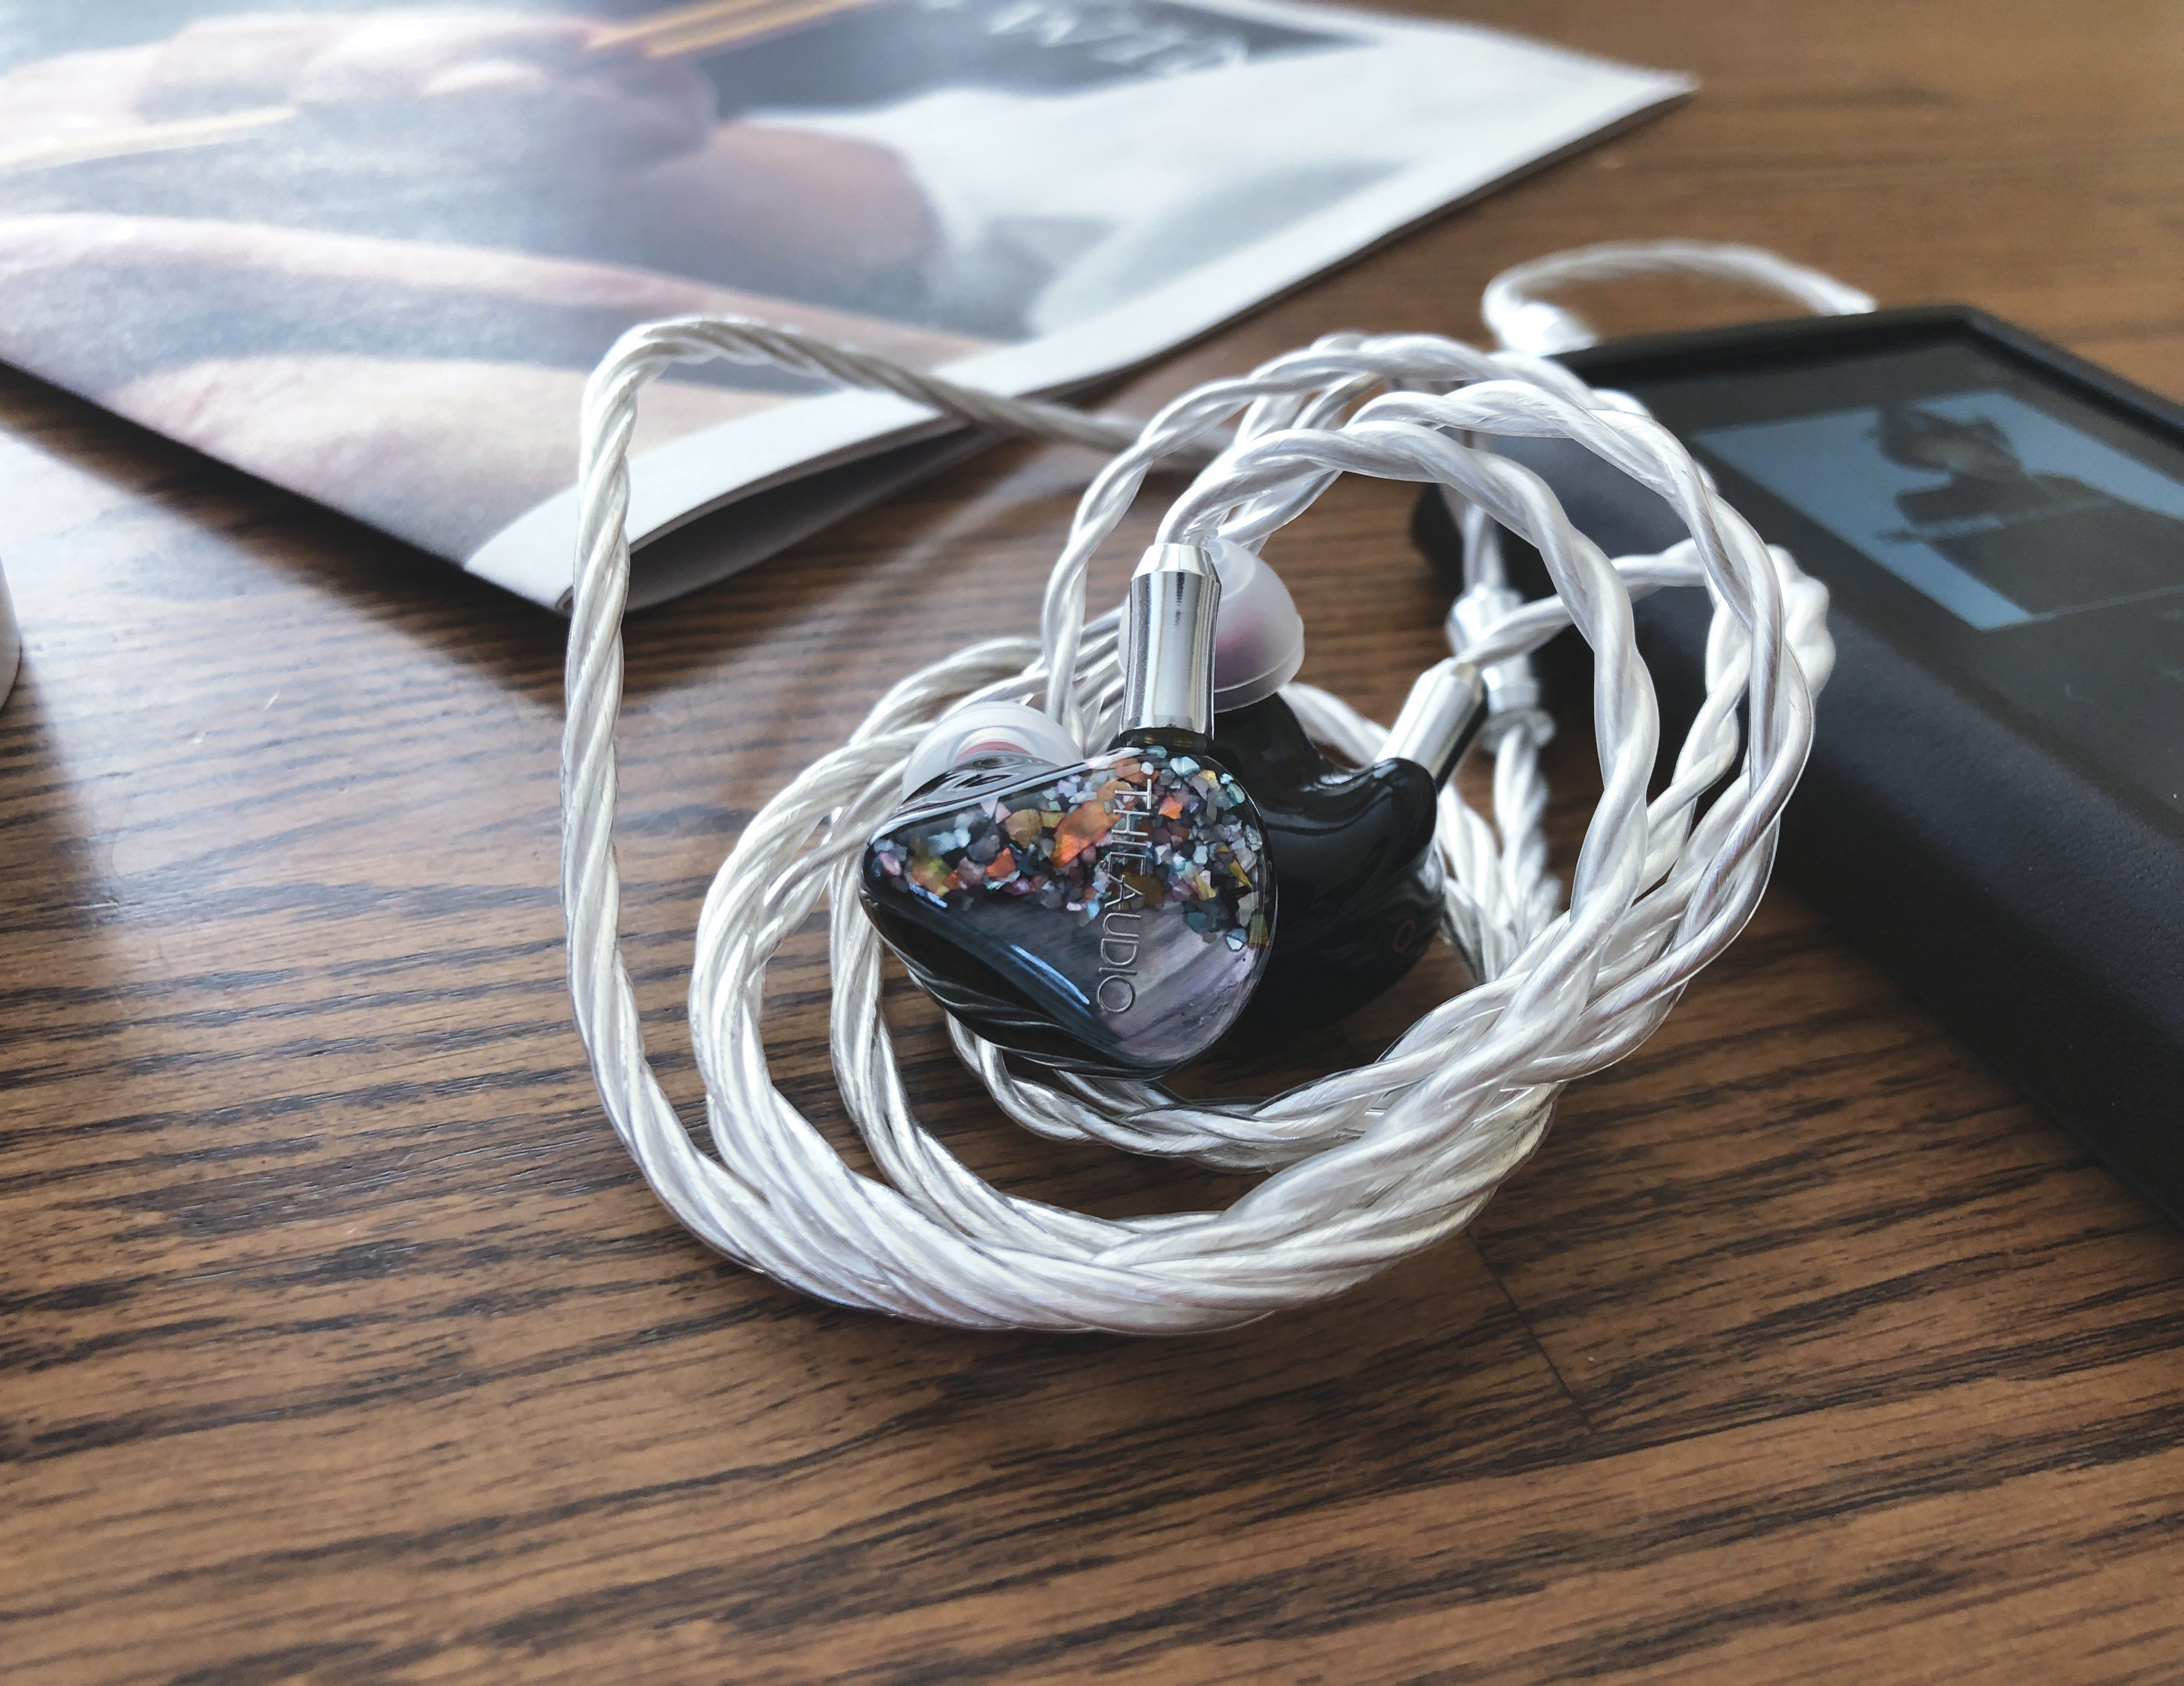 Thieaudio Monarch Review - Cut and Dry